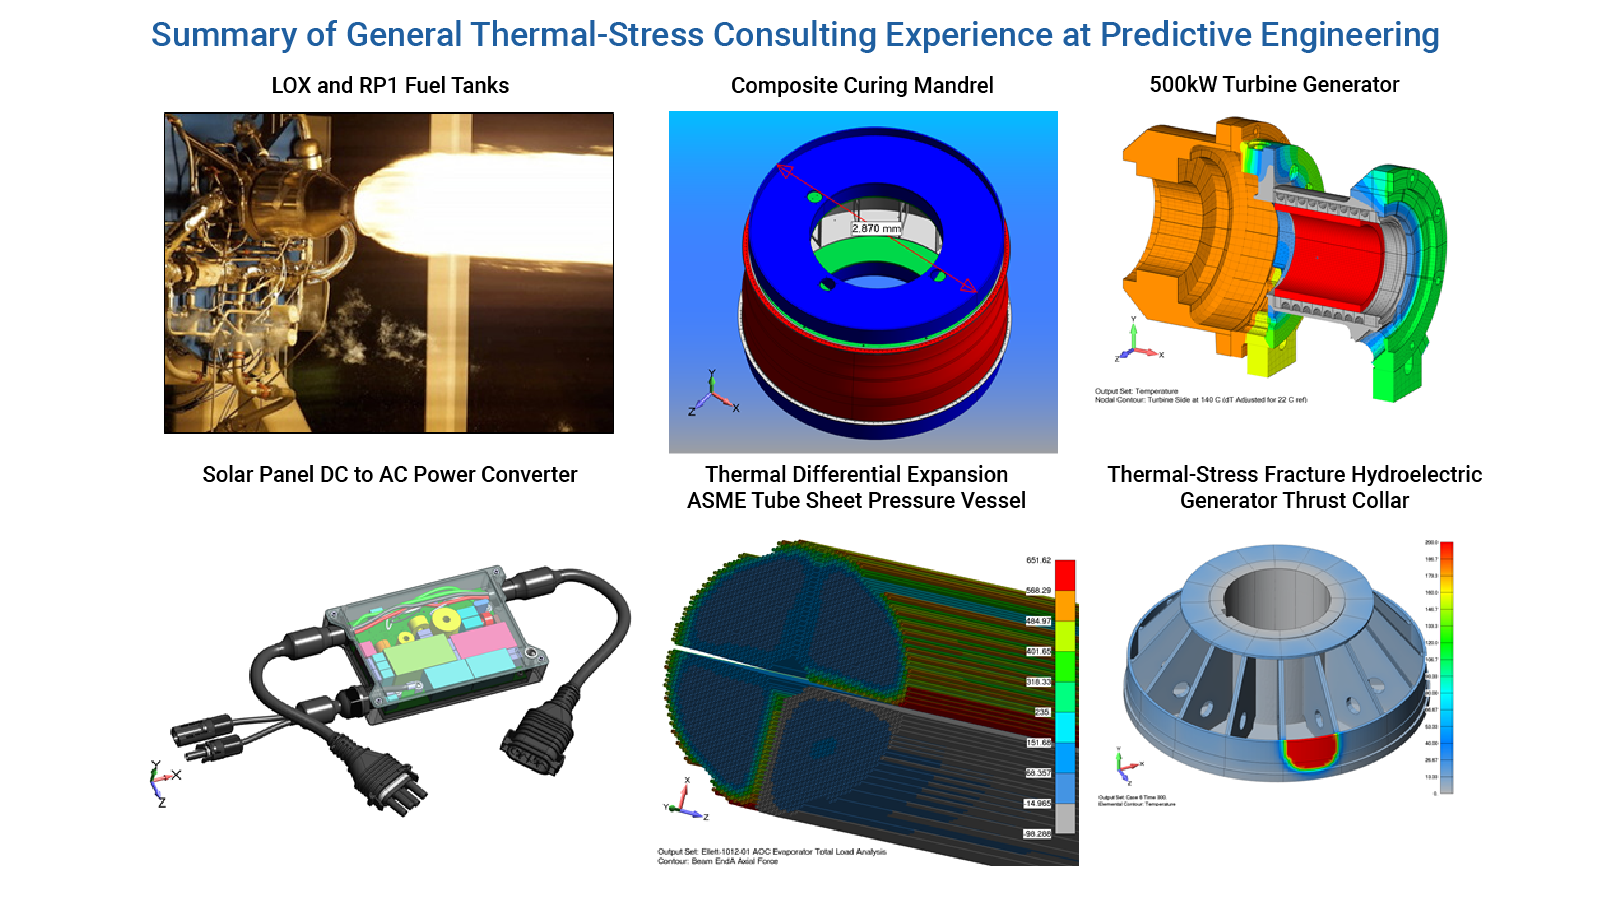 Summary of General Thermal-Stress Consulting Projects